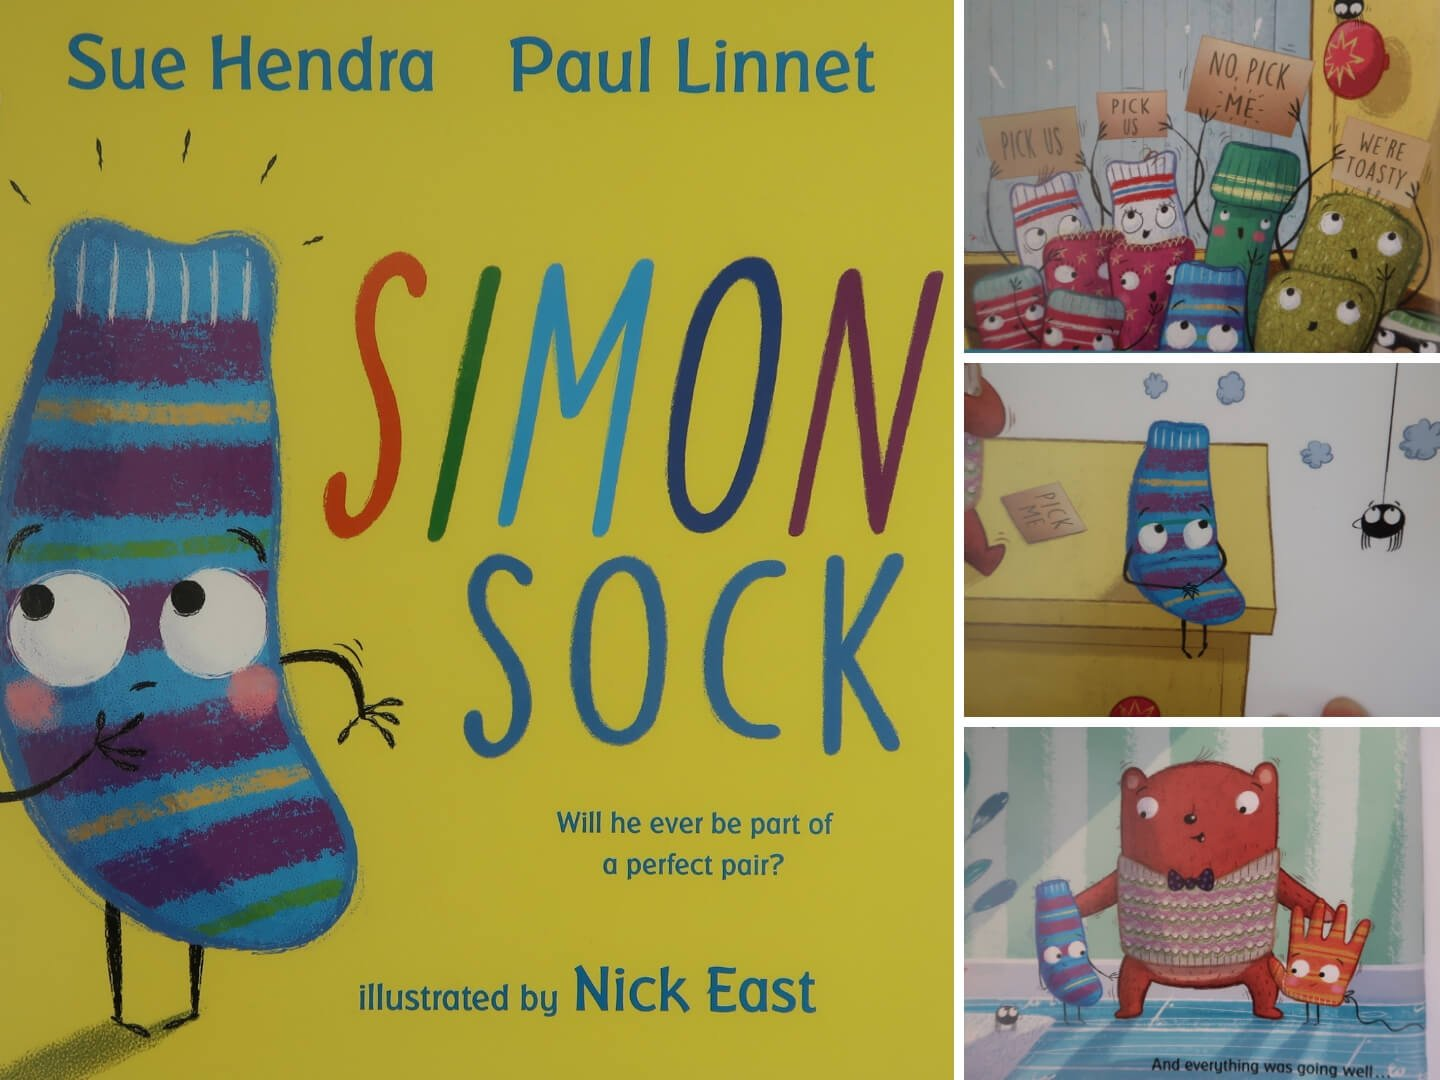 Simon Sock by Sue Hendra and Paul Linnet